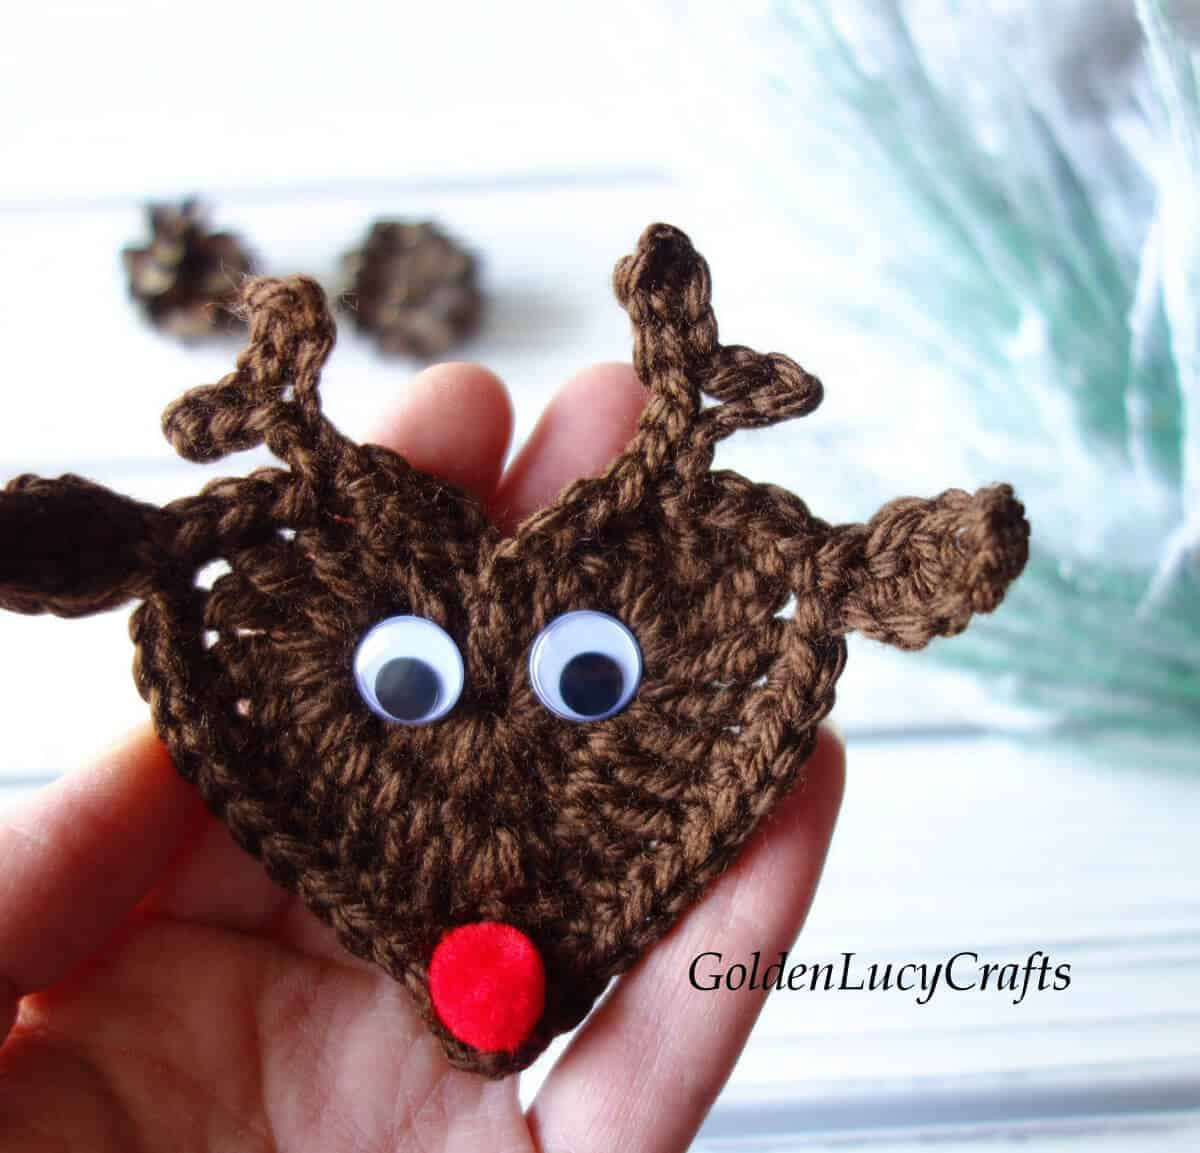 Crocheted reindeer applique in the palm of a hand.